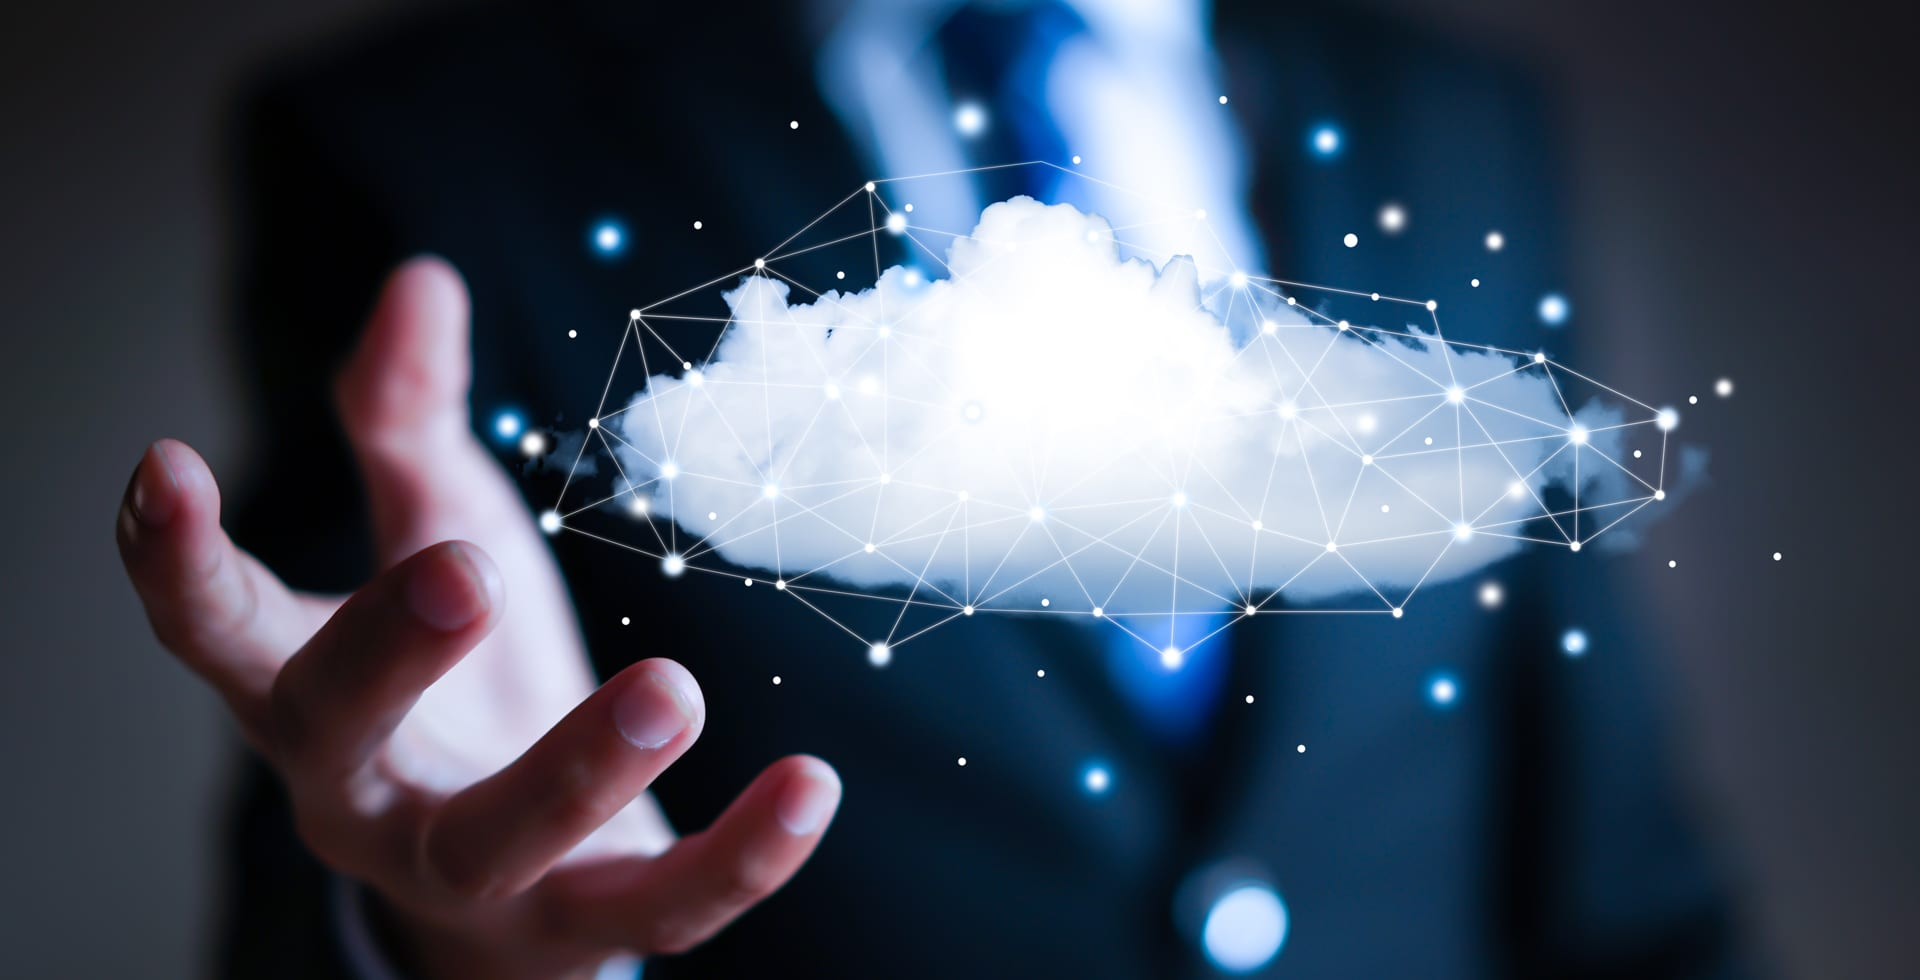 Cloud misconfiguration often overlooked in rush to digitalize: study